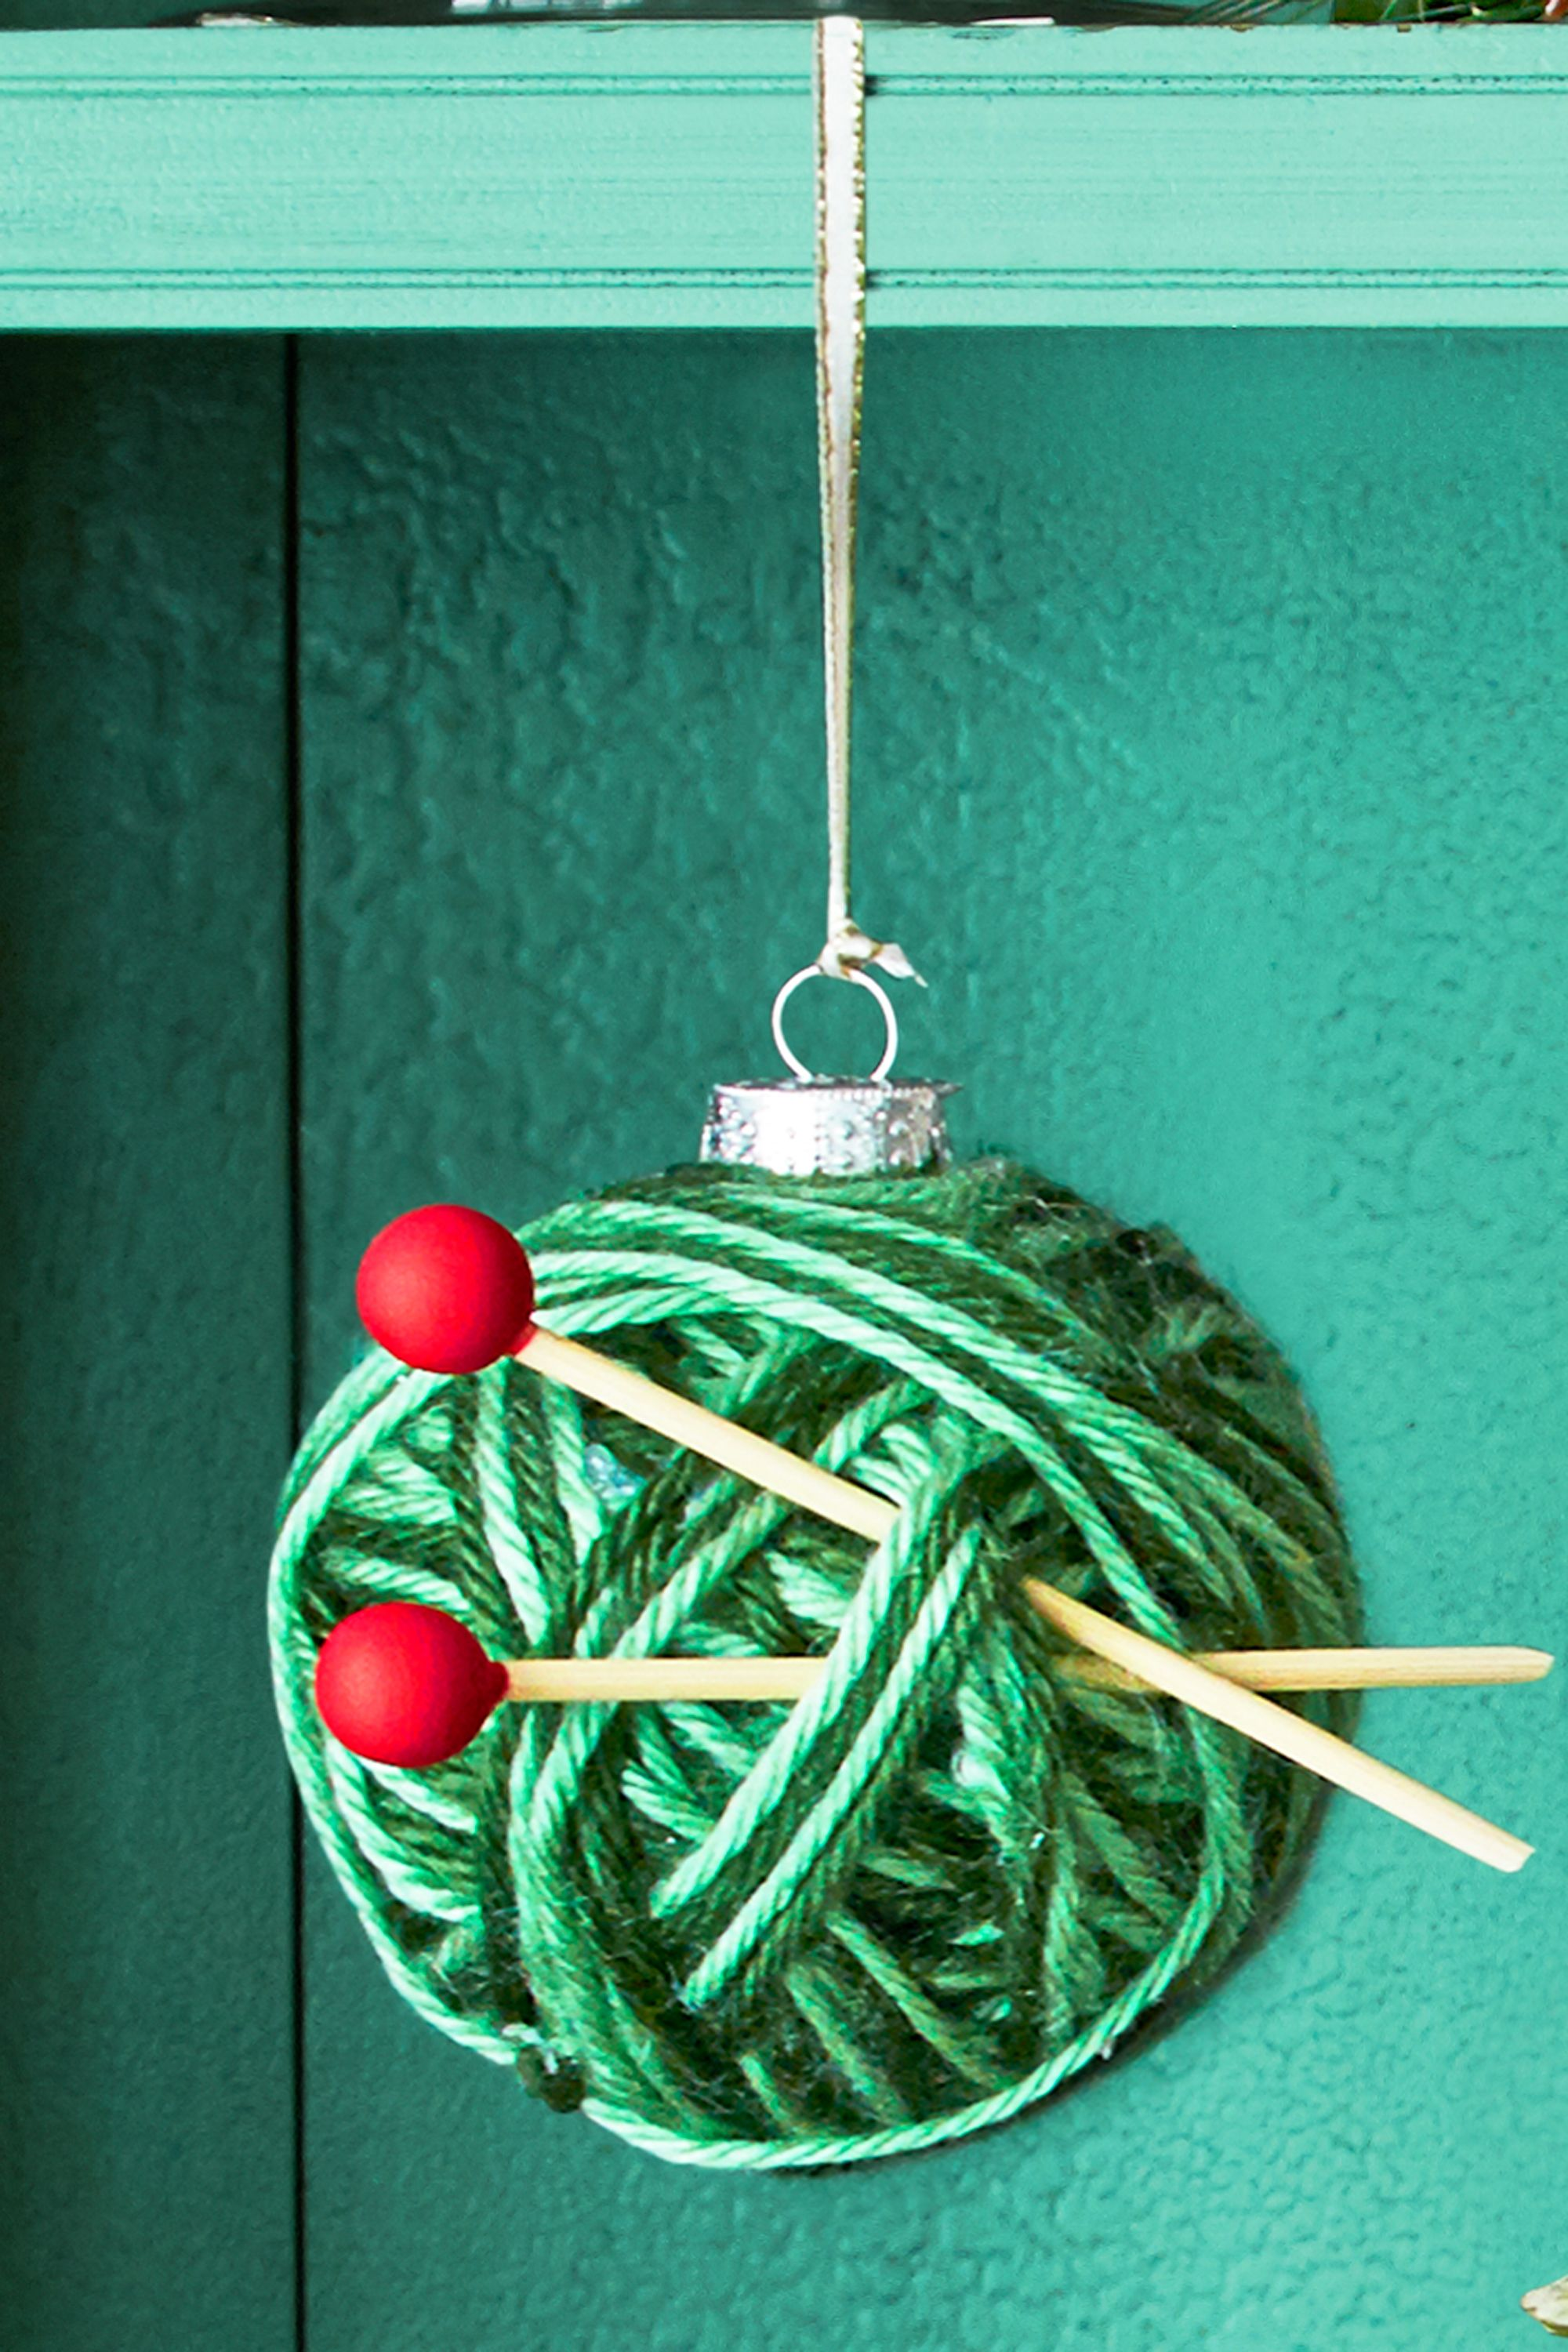 31 homemade diy christmas ornament craft ideas how to make holiday ornaments - Teal Green Christmas Decorations